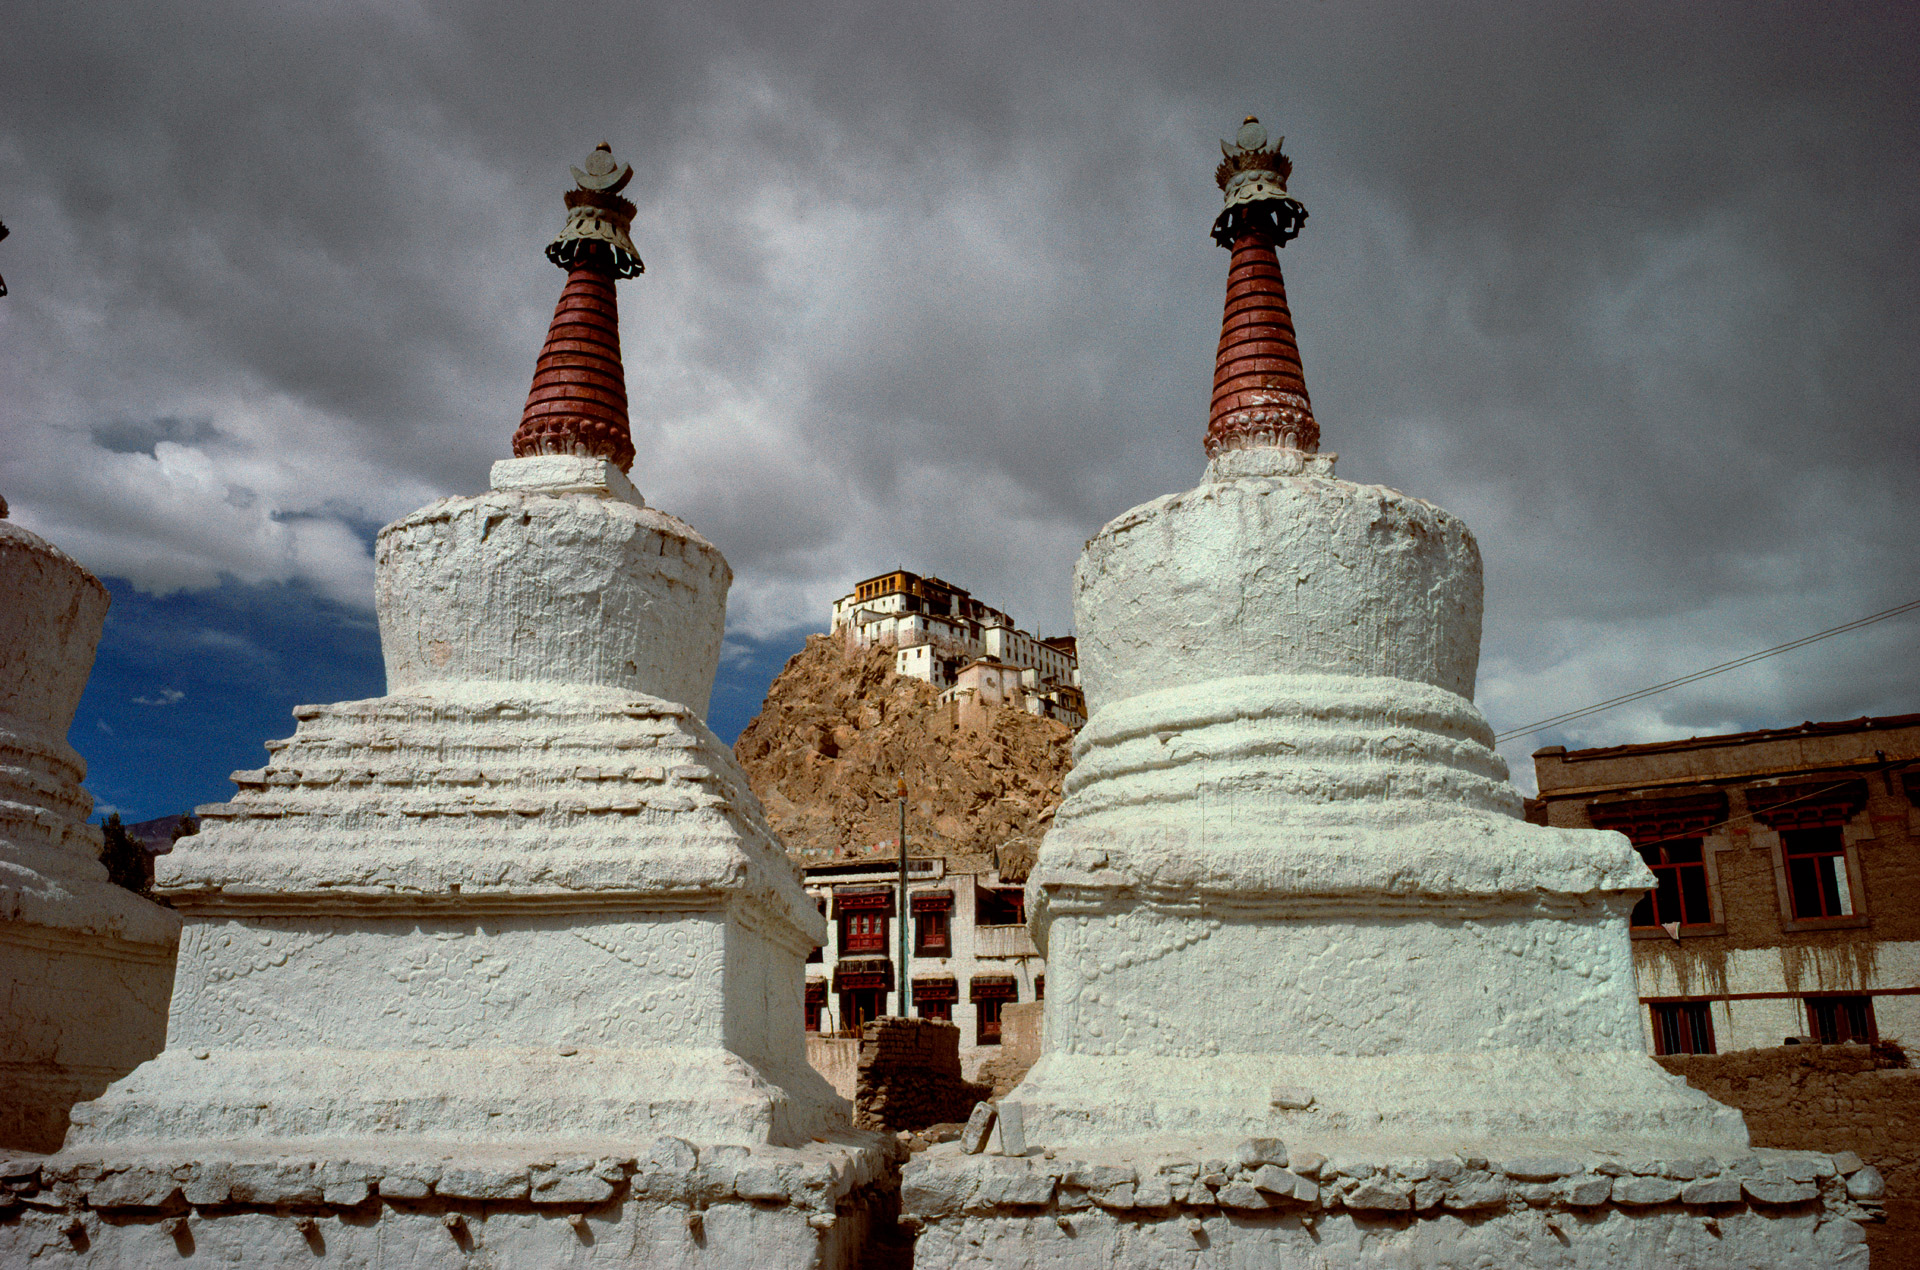 Thiksey Monastery and stupas in Ladakh